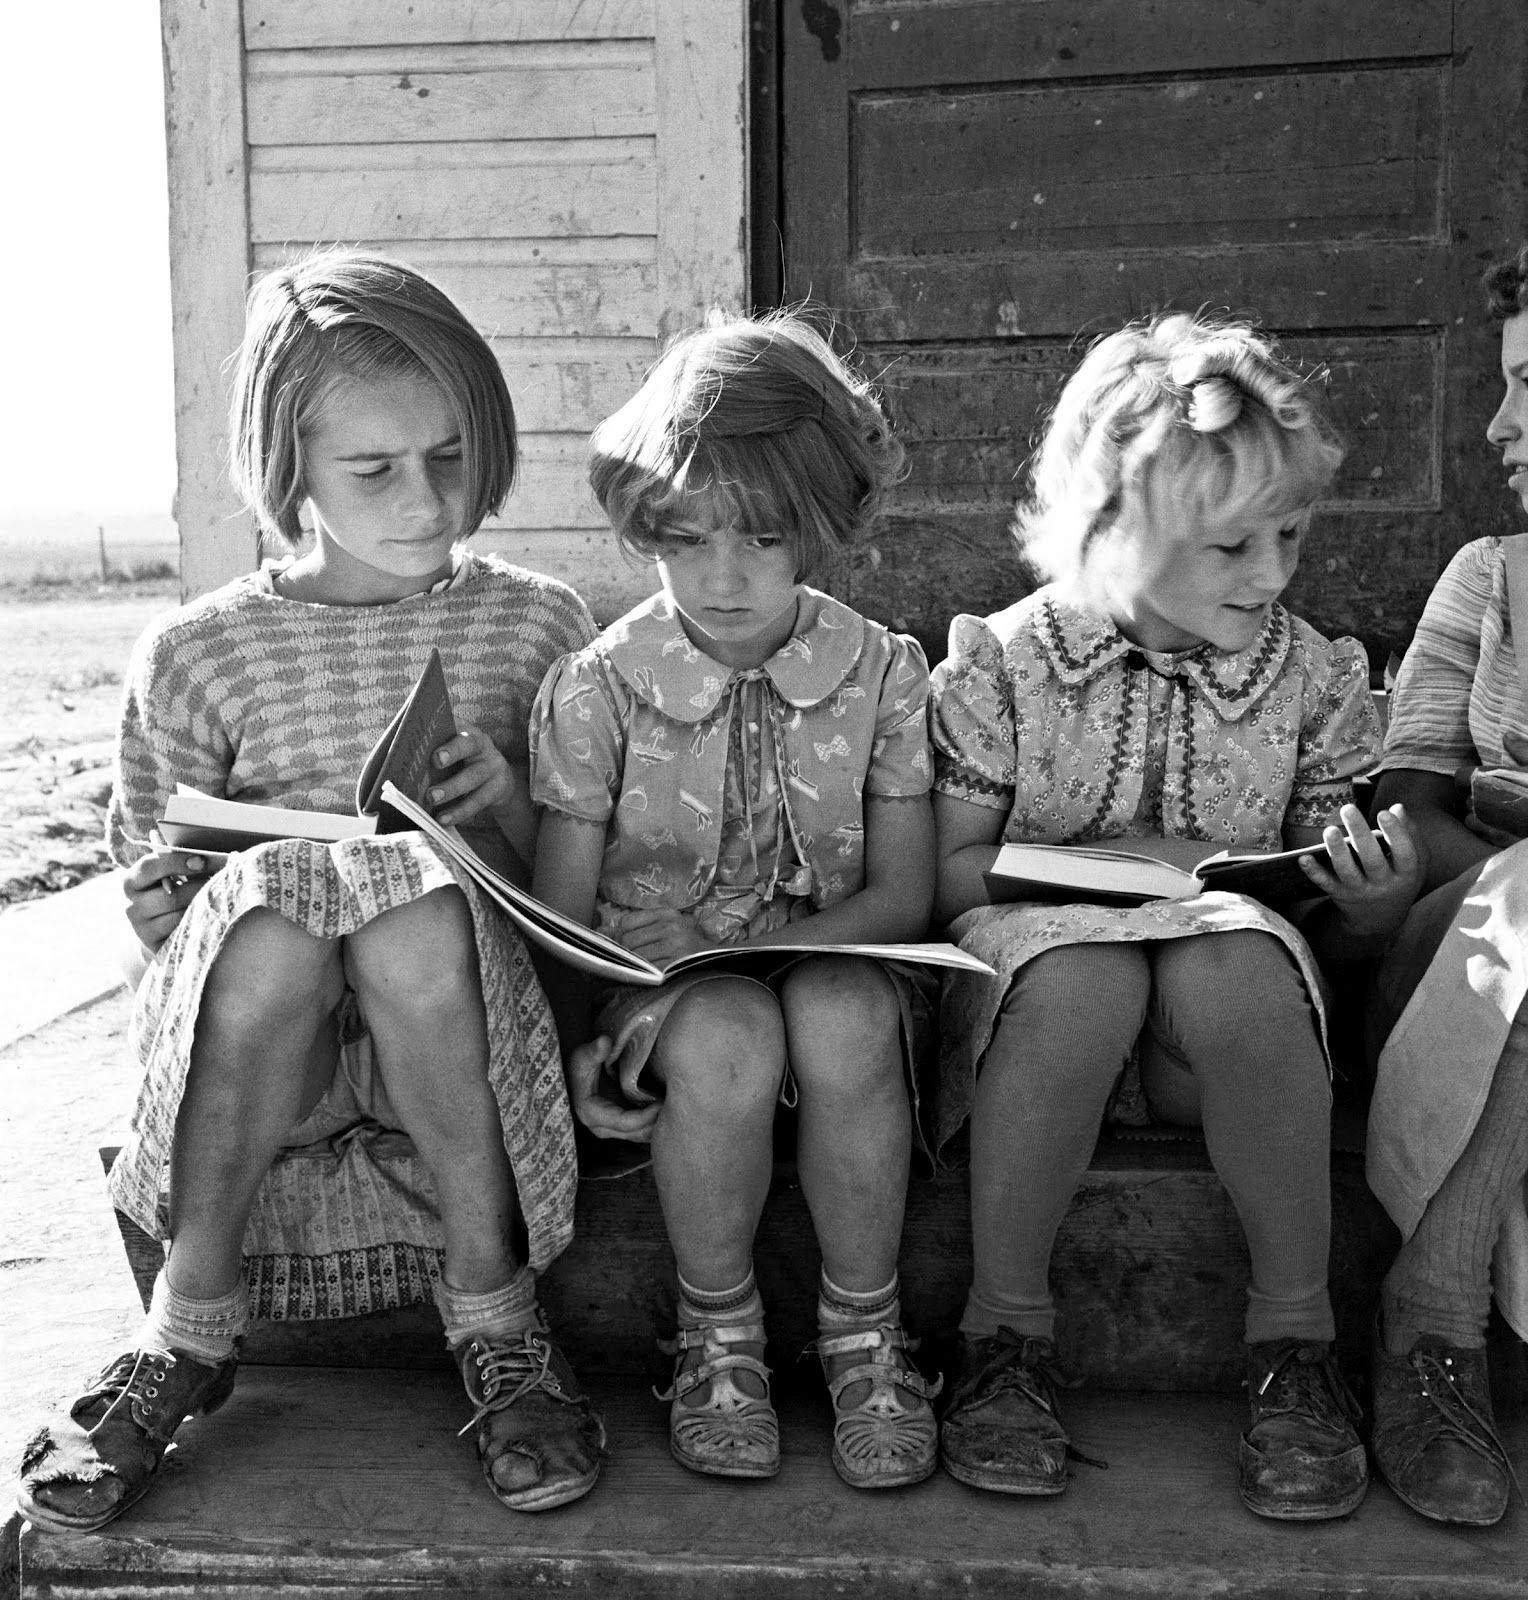 """Niñas leyendo su lección"" (1939). Obra de Dorothea Lange (1895-1965).  ""Girls Reading their lesson"" (1939). Work by Dorothea Lange (1895-1965)."